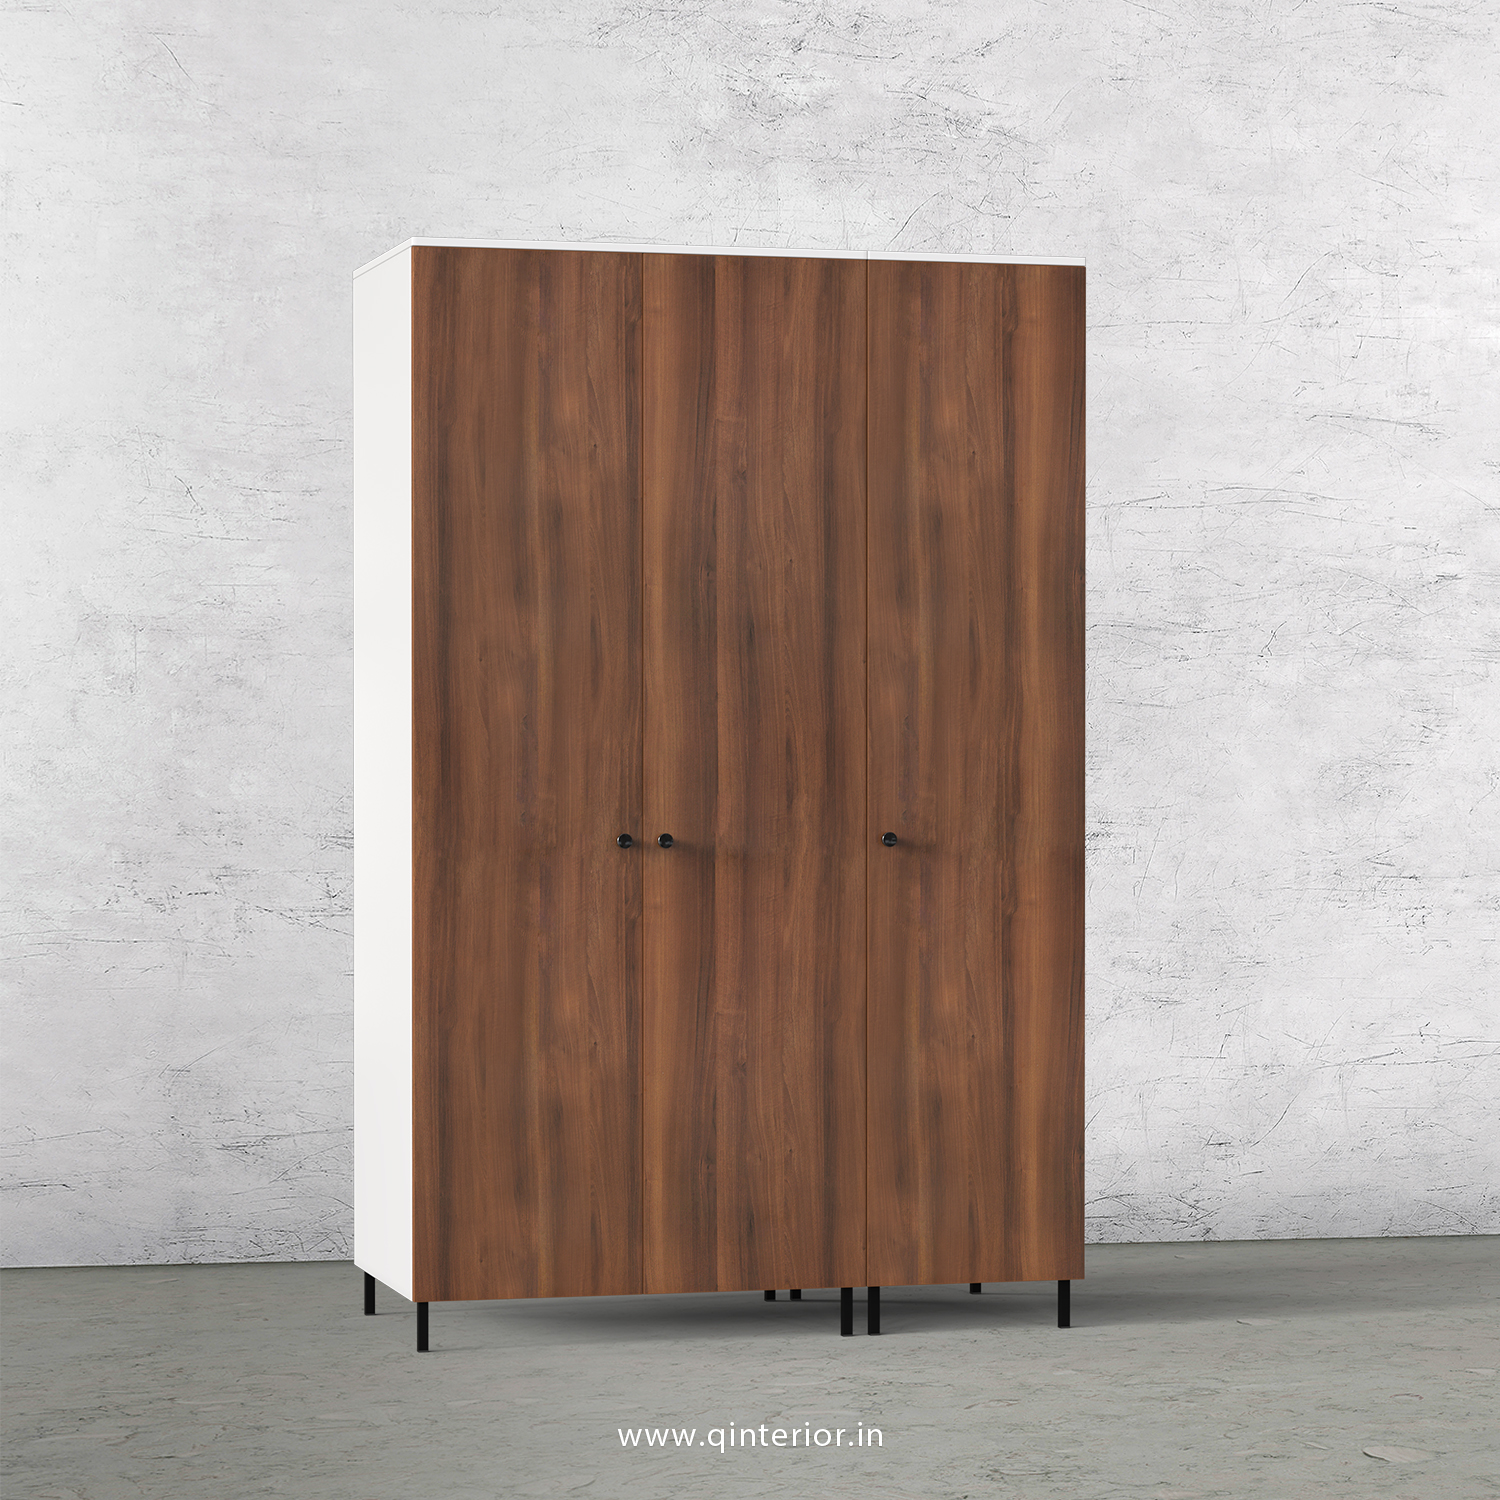 Lambent 3 Door Wardrobe in White and Teak Finish – TWRD001 C9